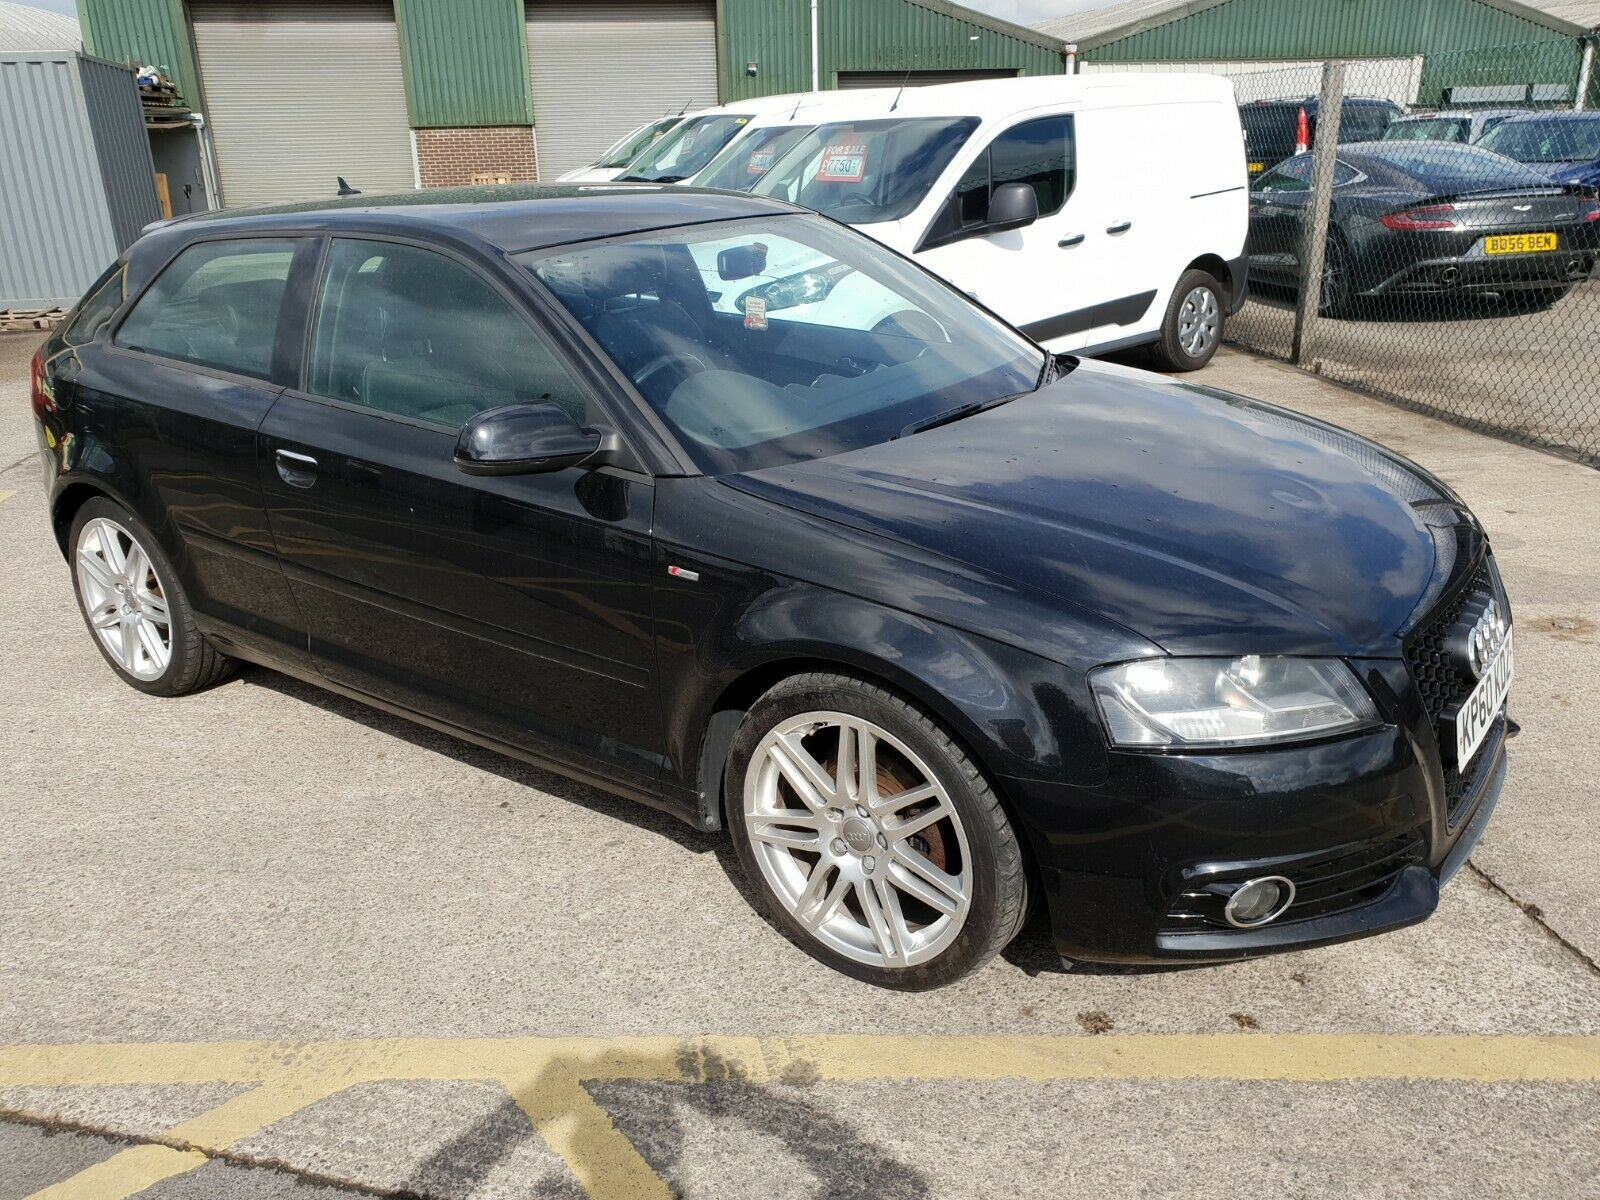 Cat D Cars for Sale Near Me Inspirational 2010 60 Audi A3 Sline 1 4 Tfsi Very Clean Car Cat D N Damaged